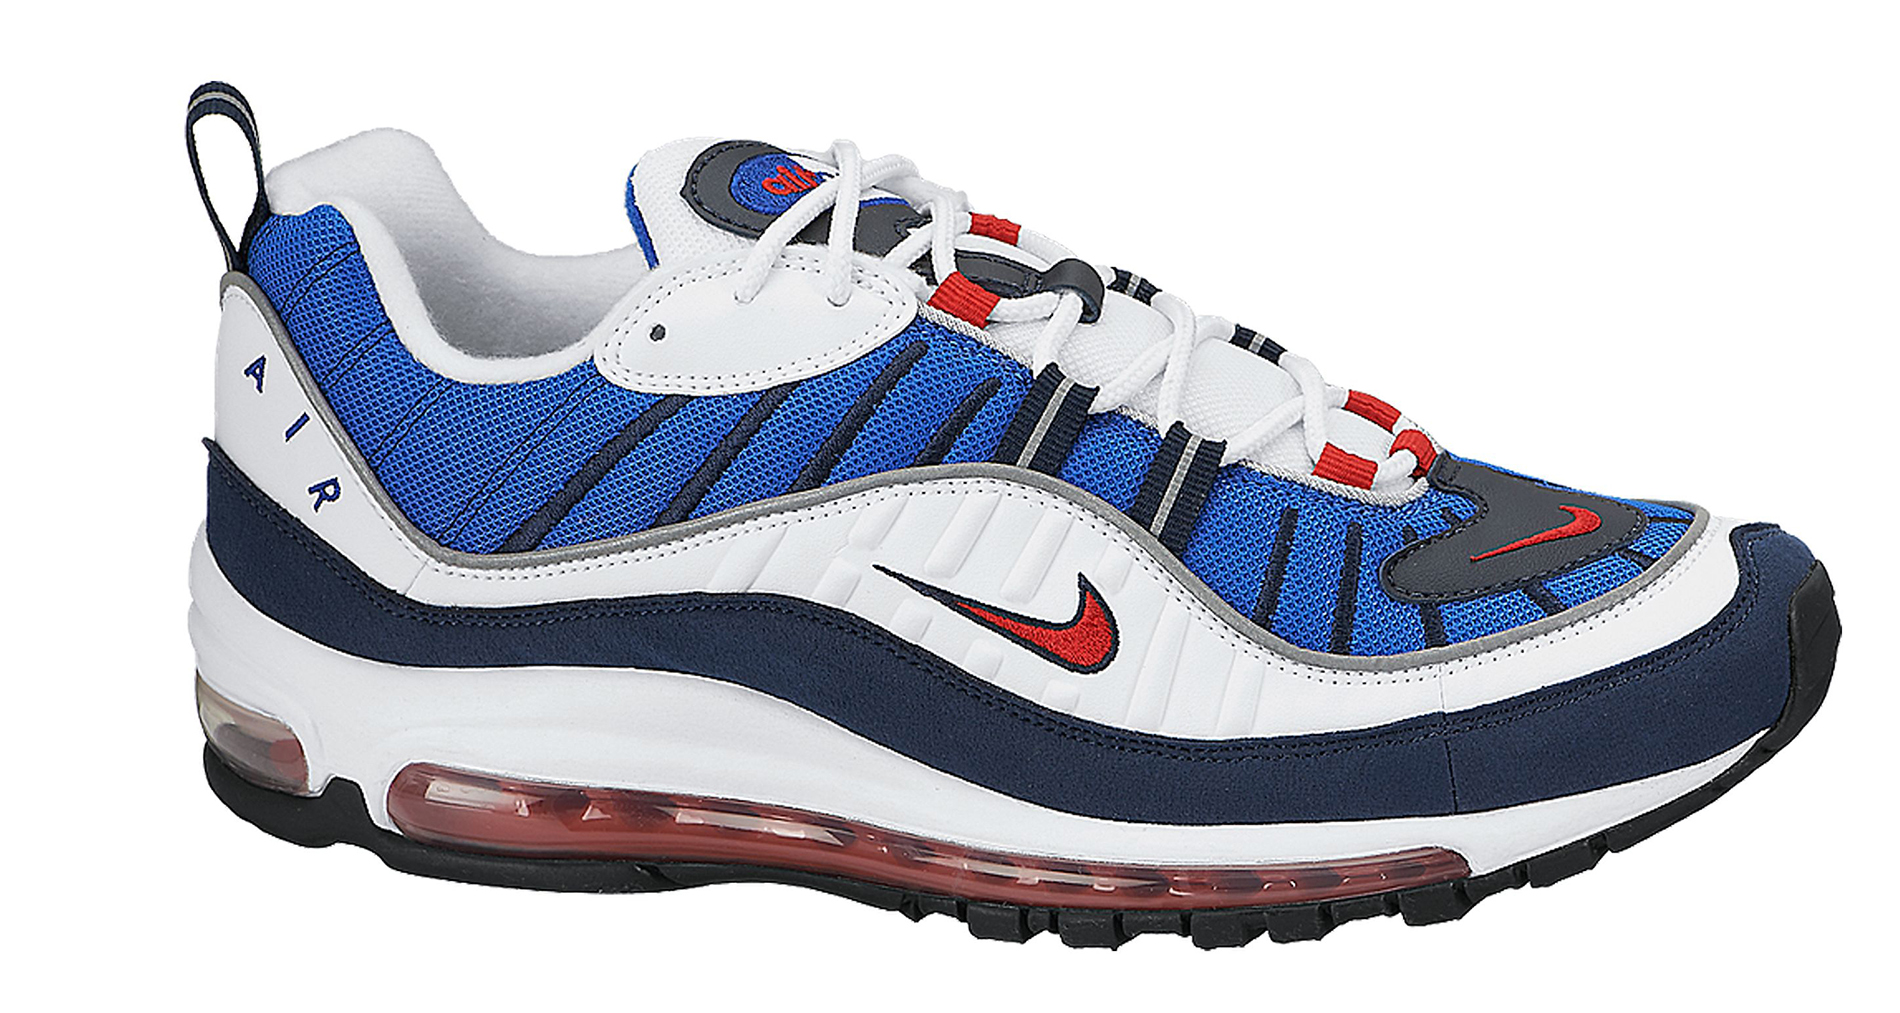 35c07e379a0 These Air Max 98's will surely give you an edge against them Zeon's ...